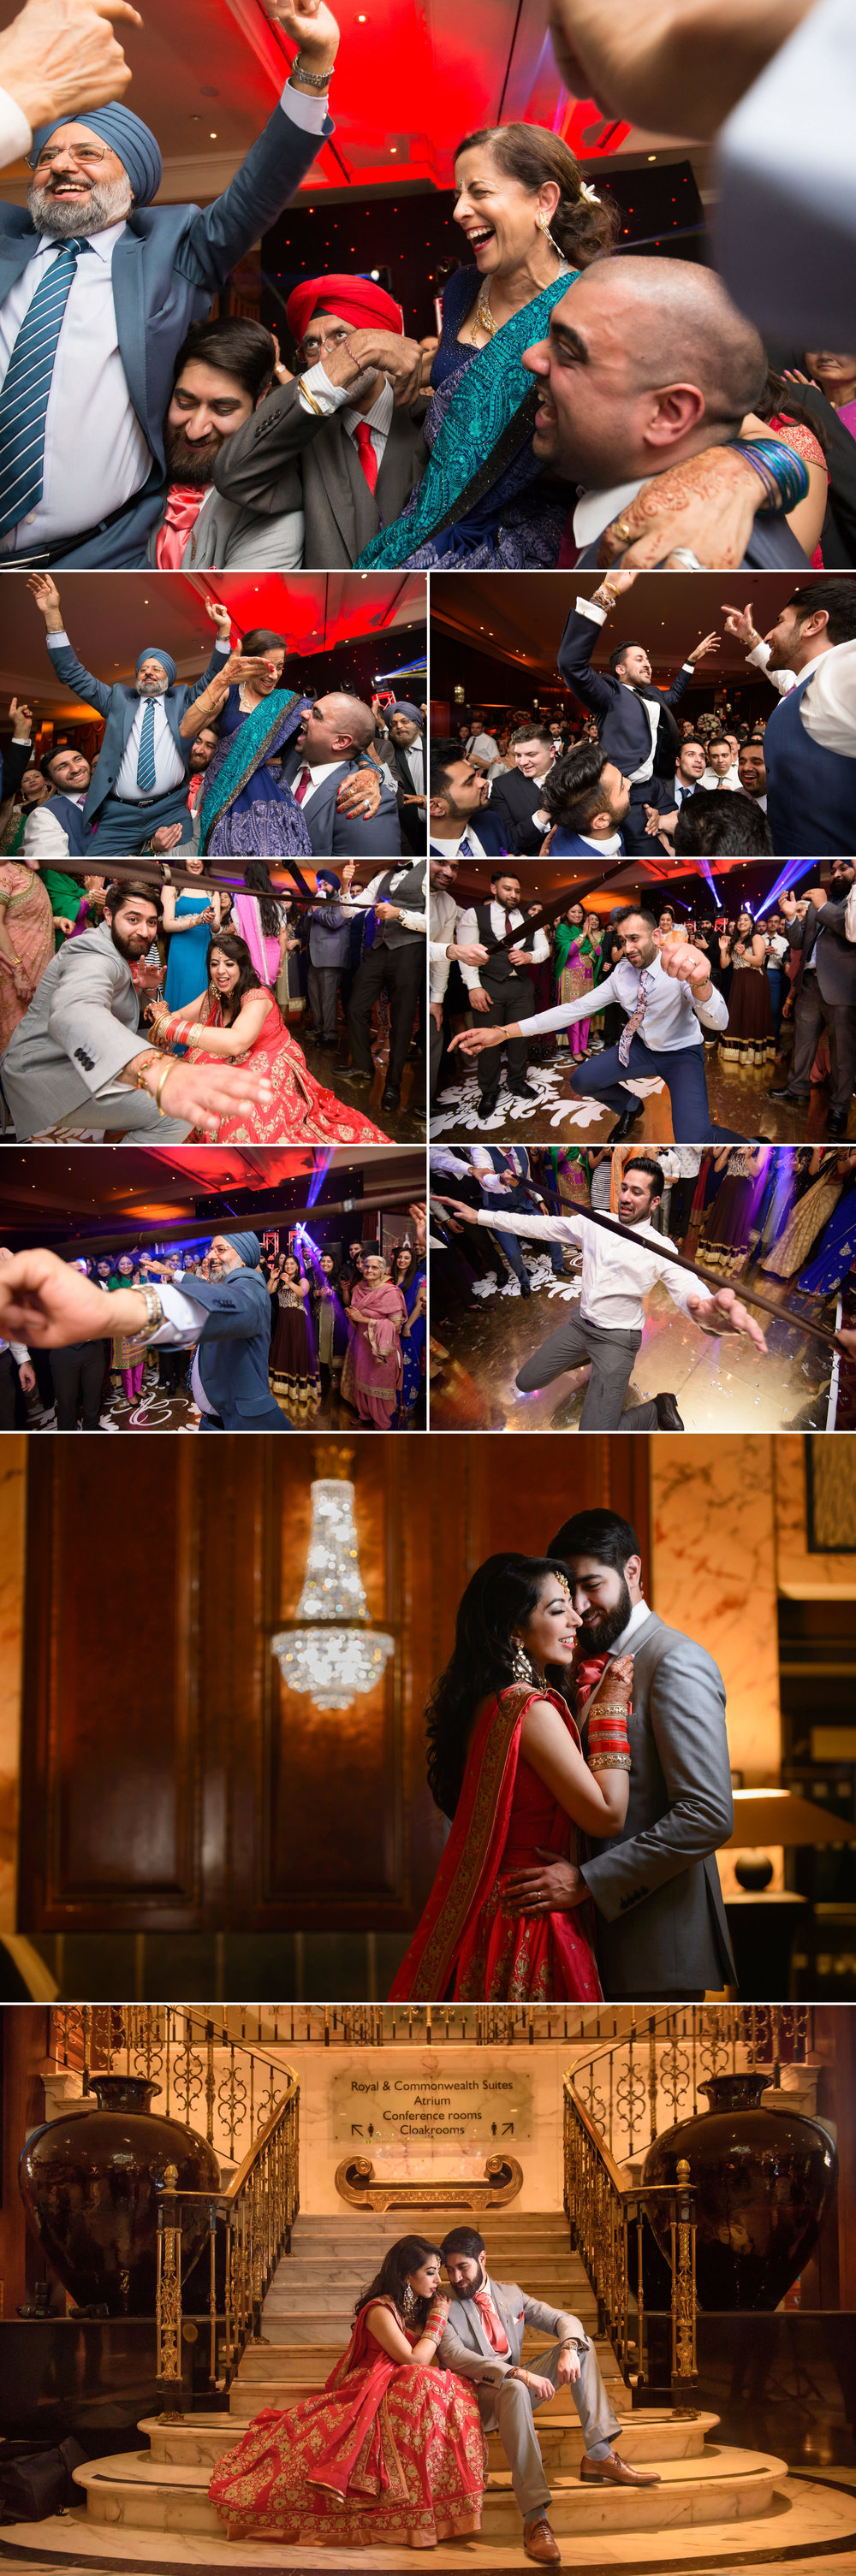 satnam photography sikh wedding reception radisson edwardian bath road london wedding photography-6